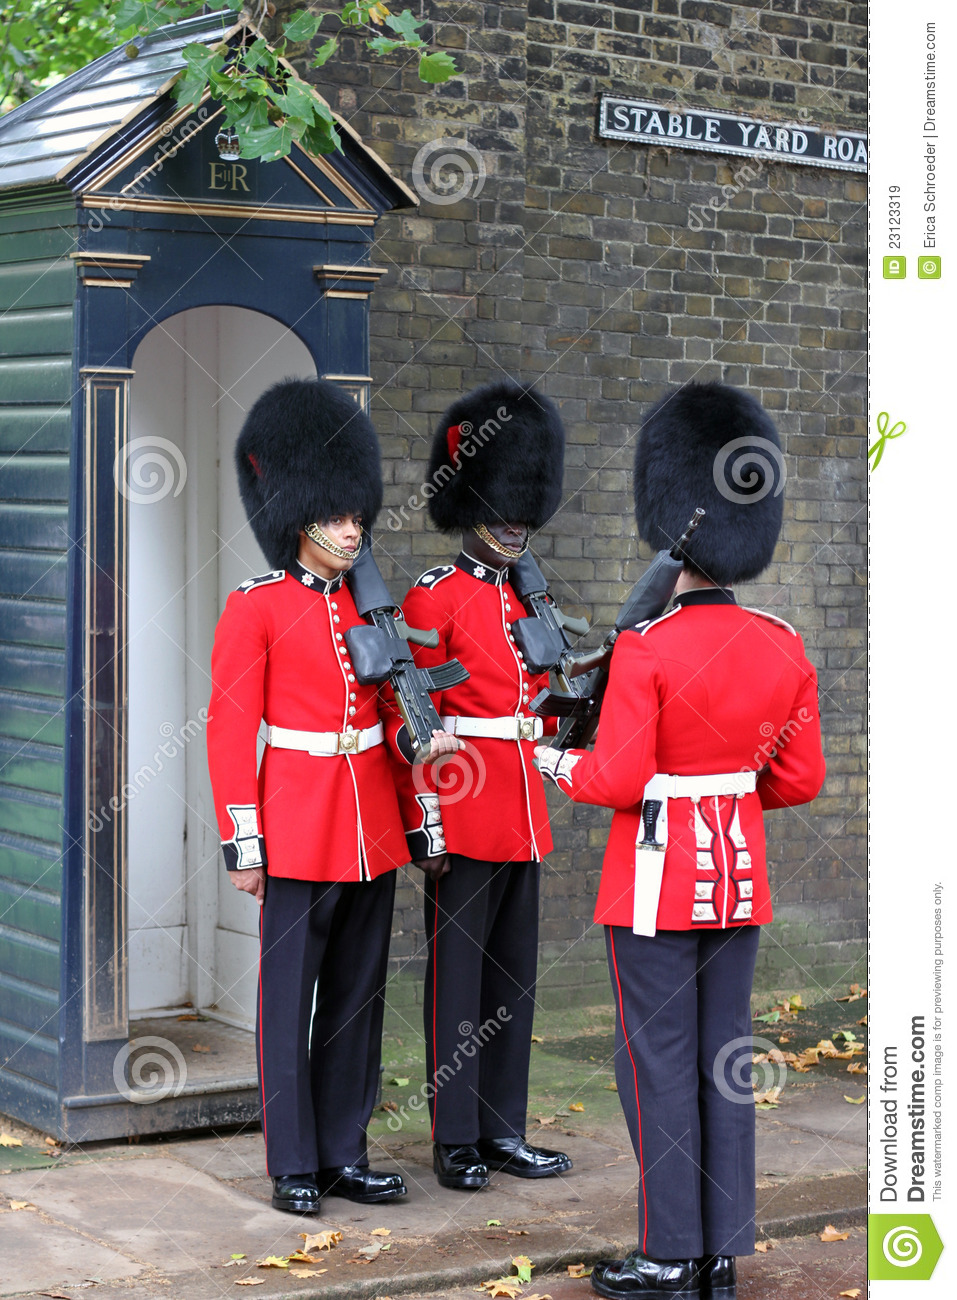 Changing Of The Guard In London England Editorial Stock Image.